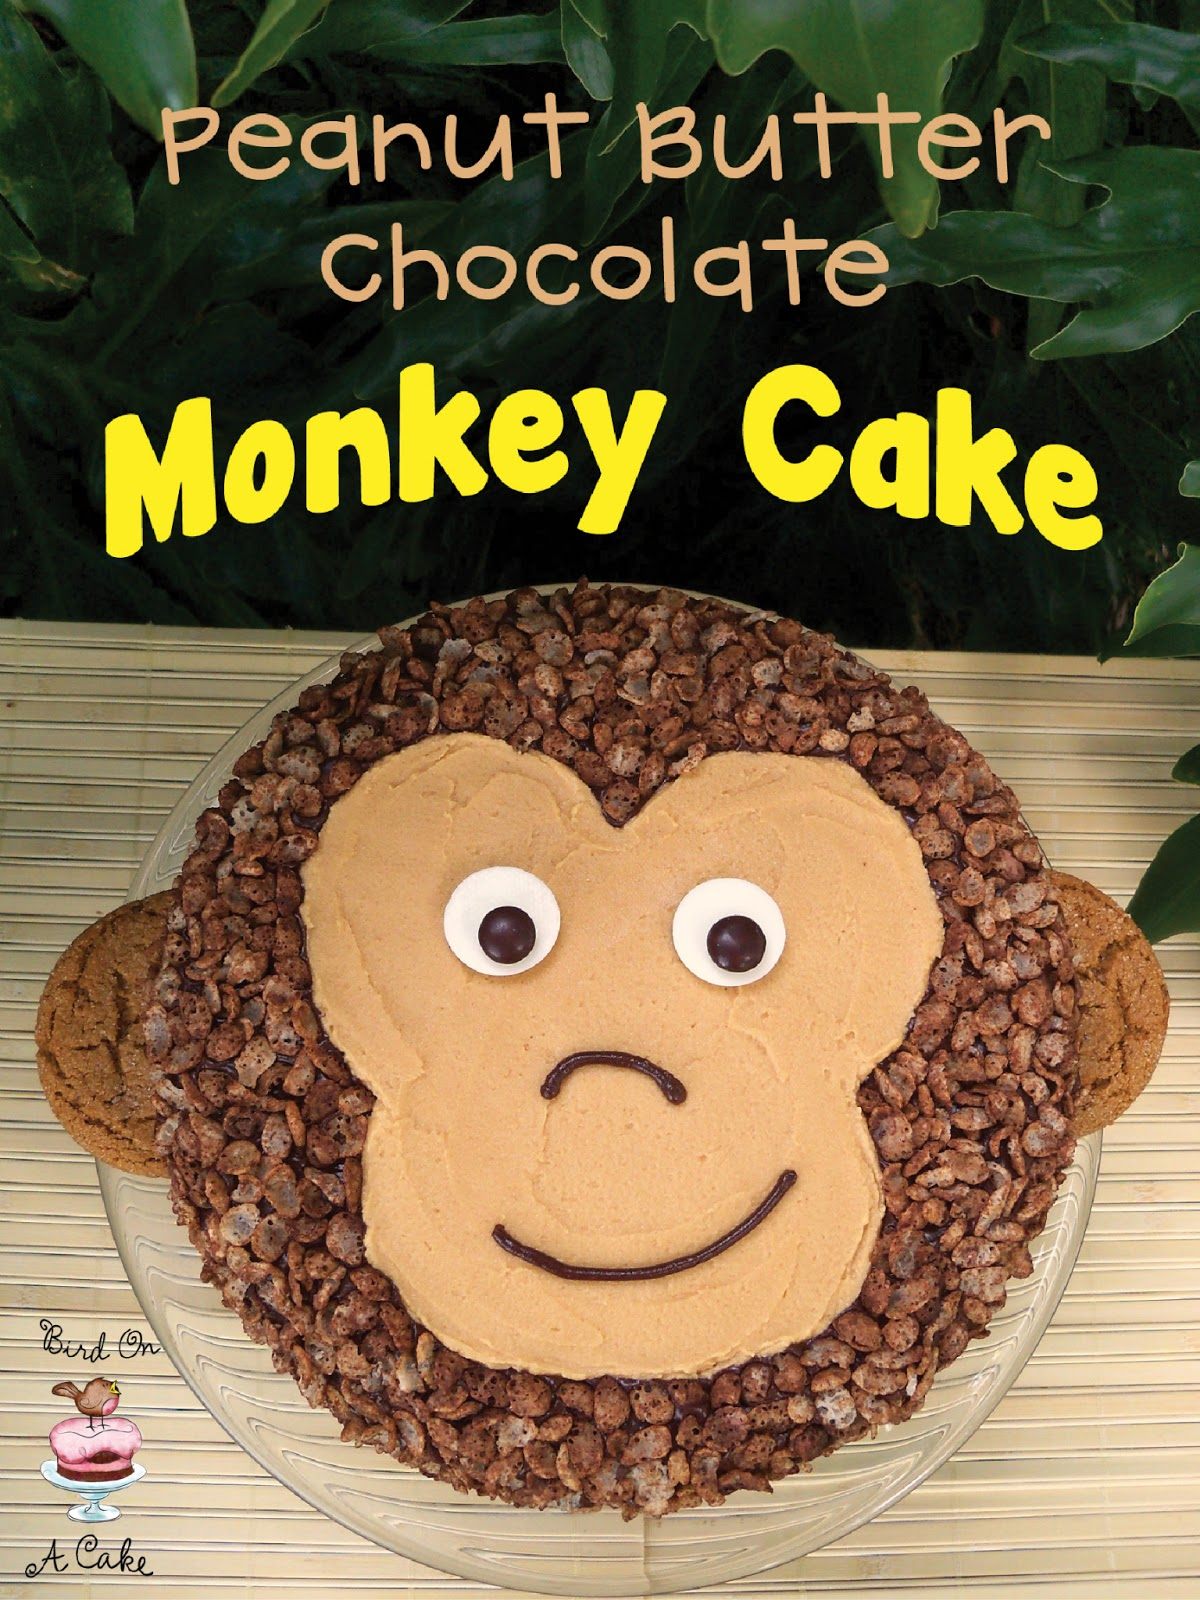 Bird On A Cake: Peanut Butter Chocolate Monkey Cake